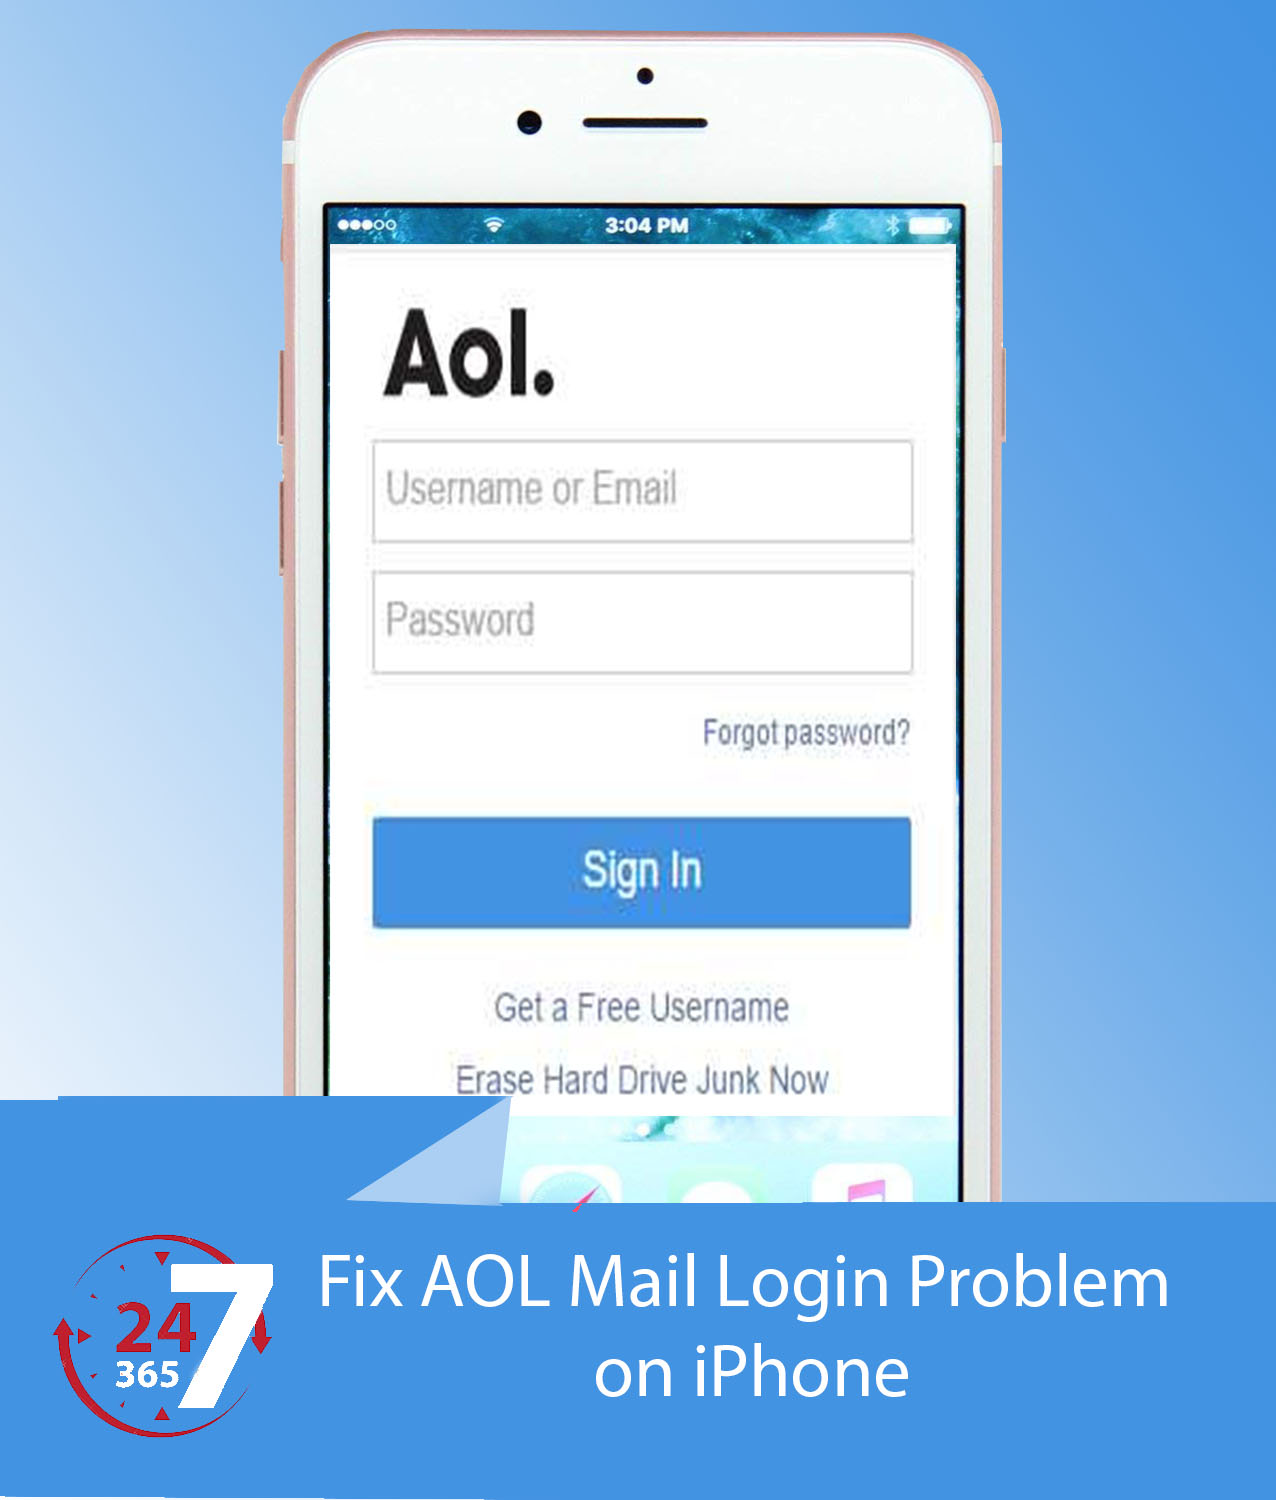 How to Fix AOL Mail Login Problem on iPhone